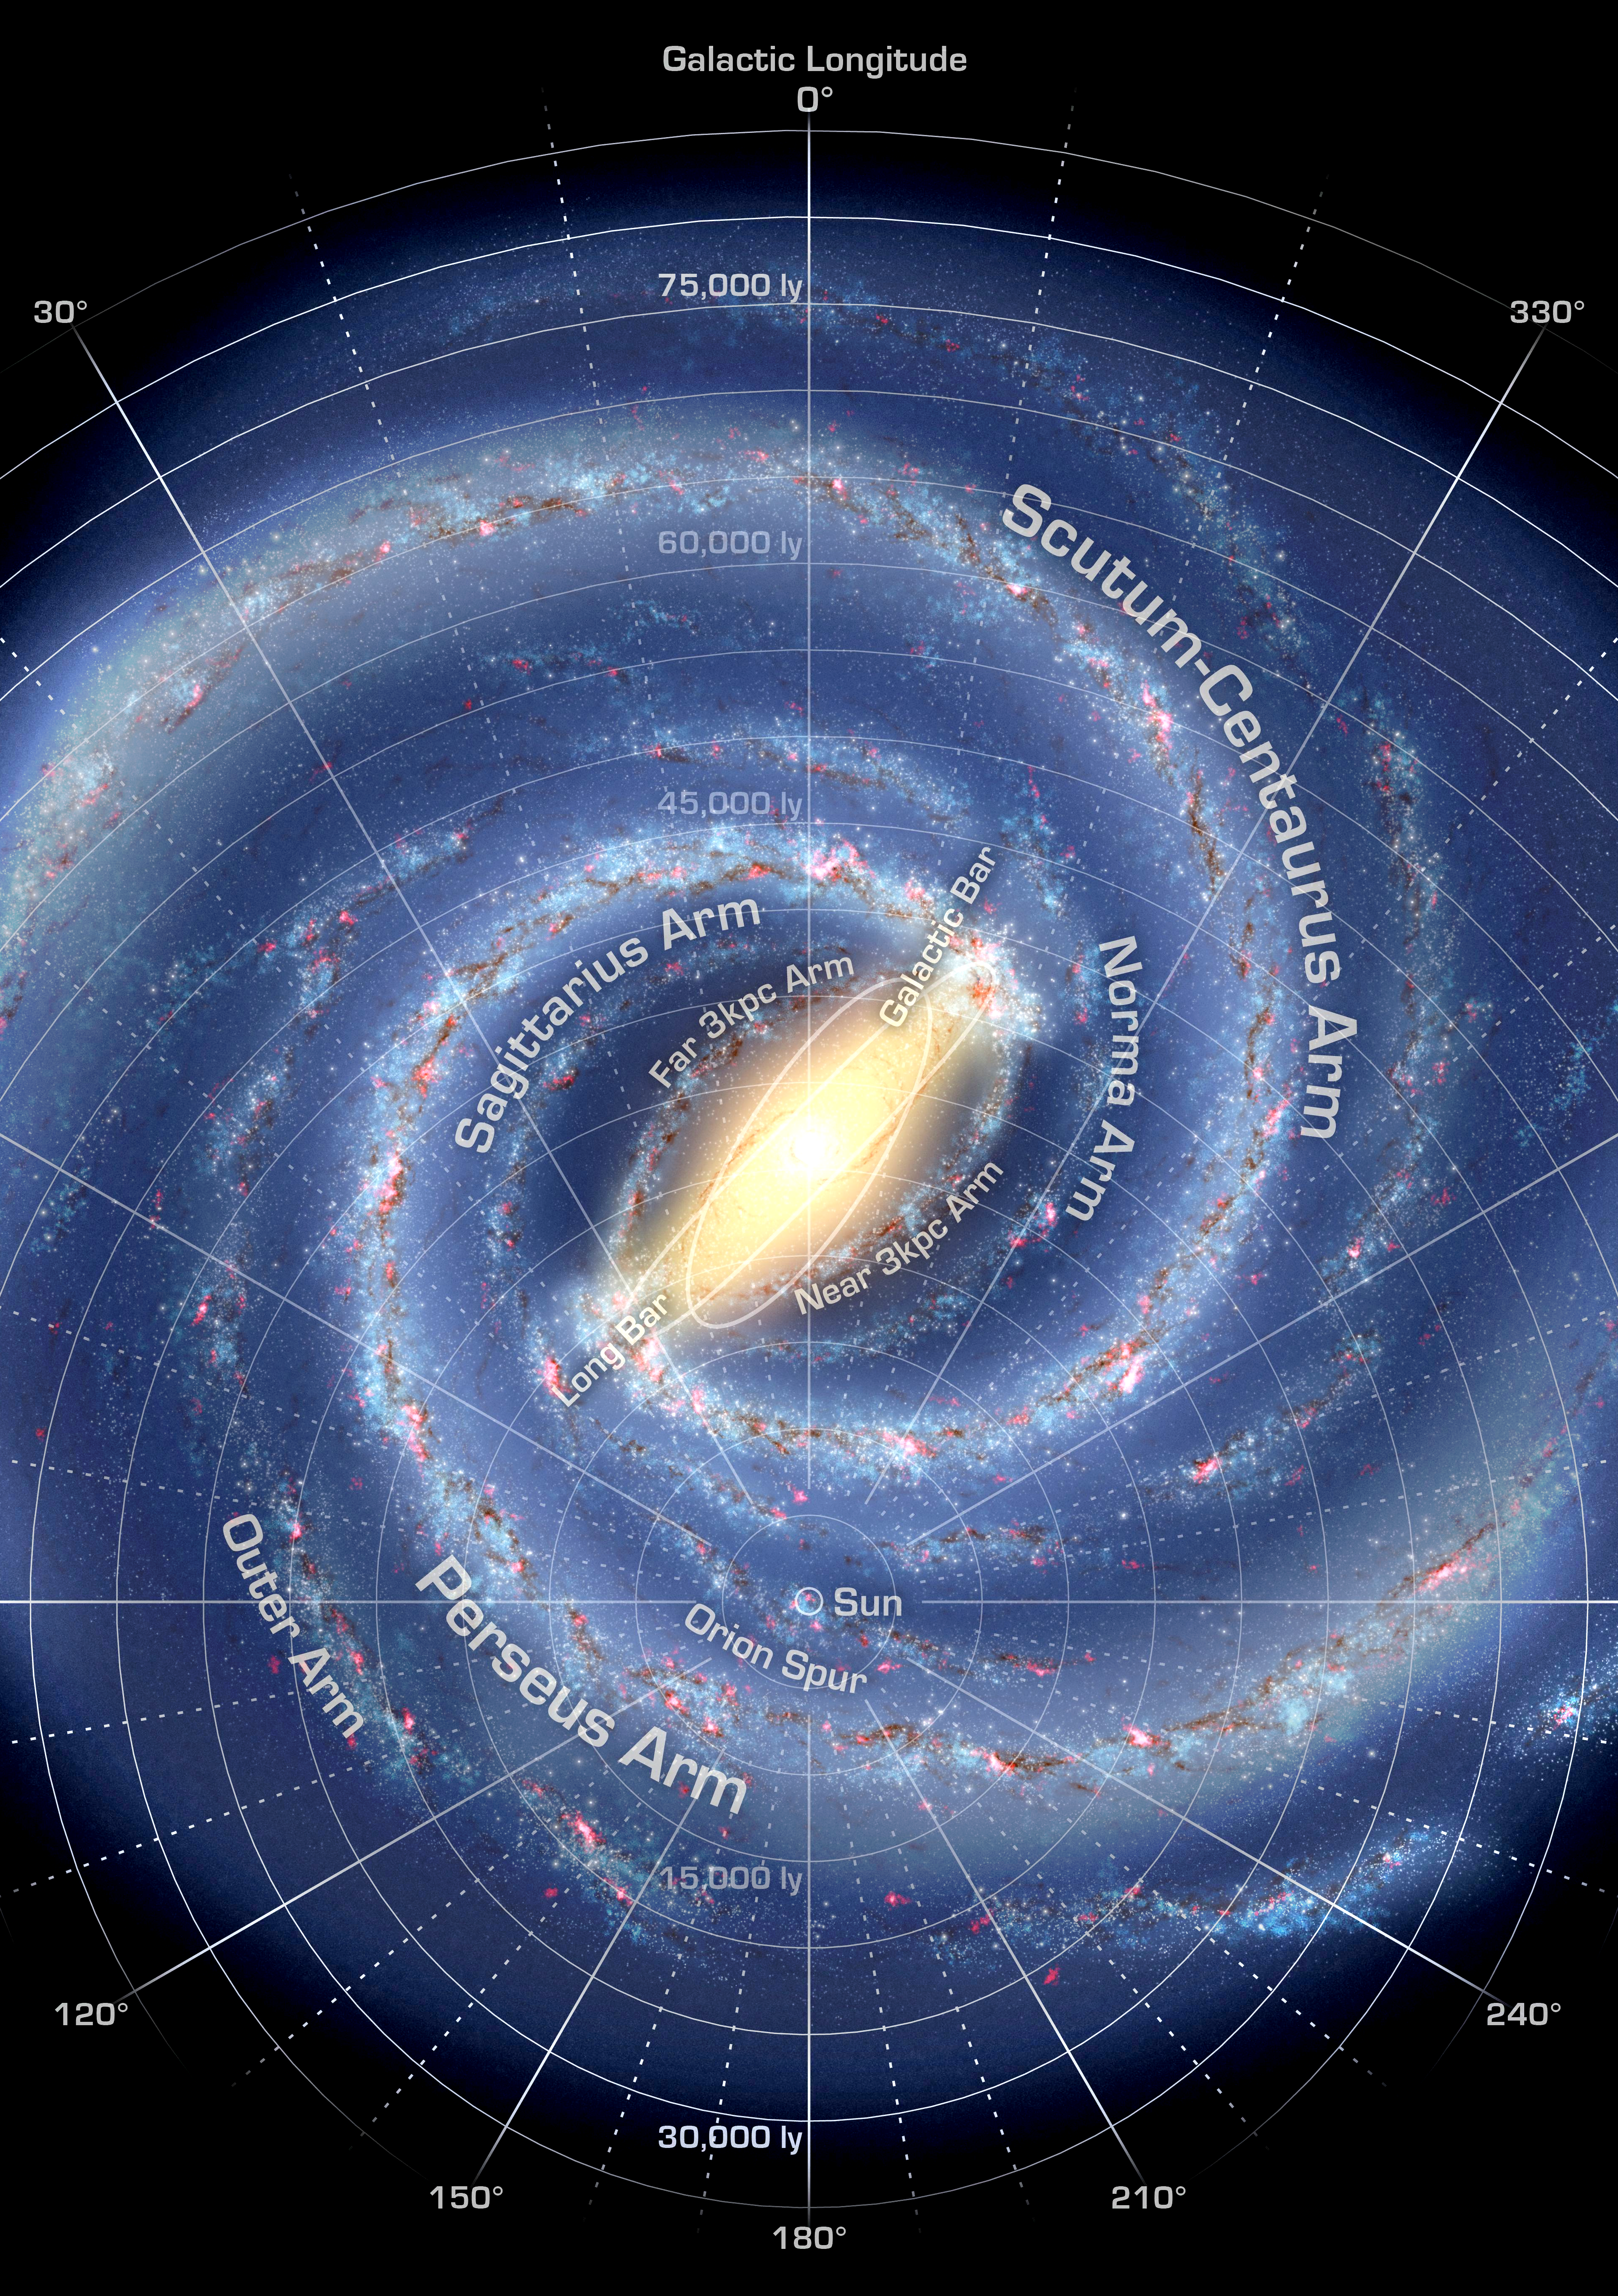 Map Of Milky Way File:Milky Way Map A5.png   Wikimedia Commons Map Of Milky Way